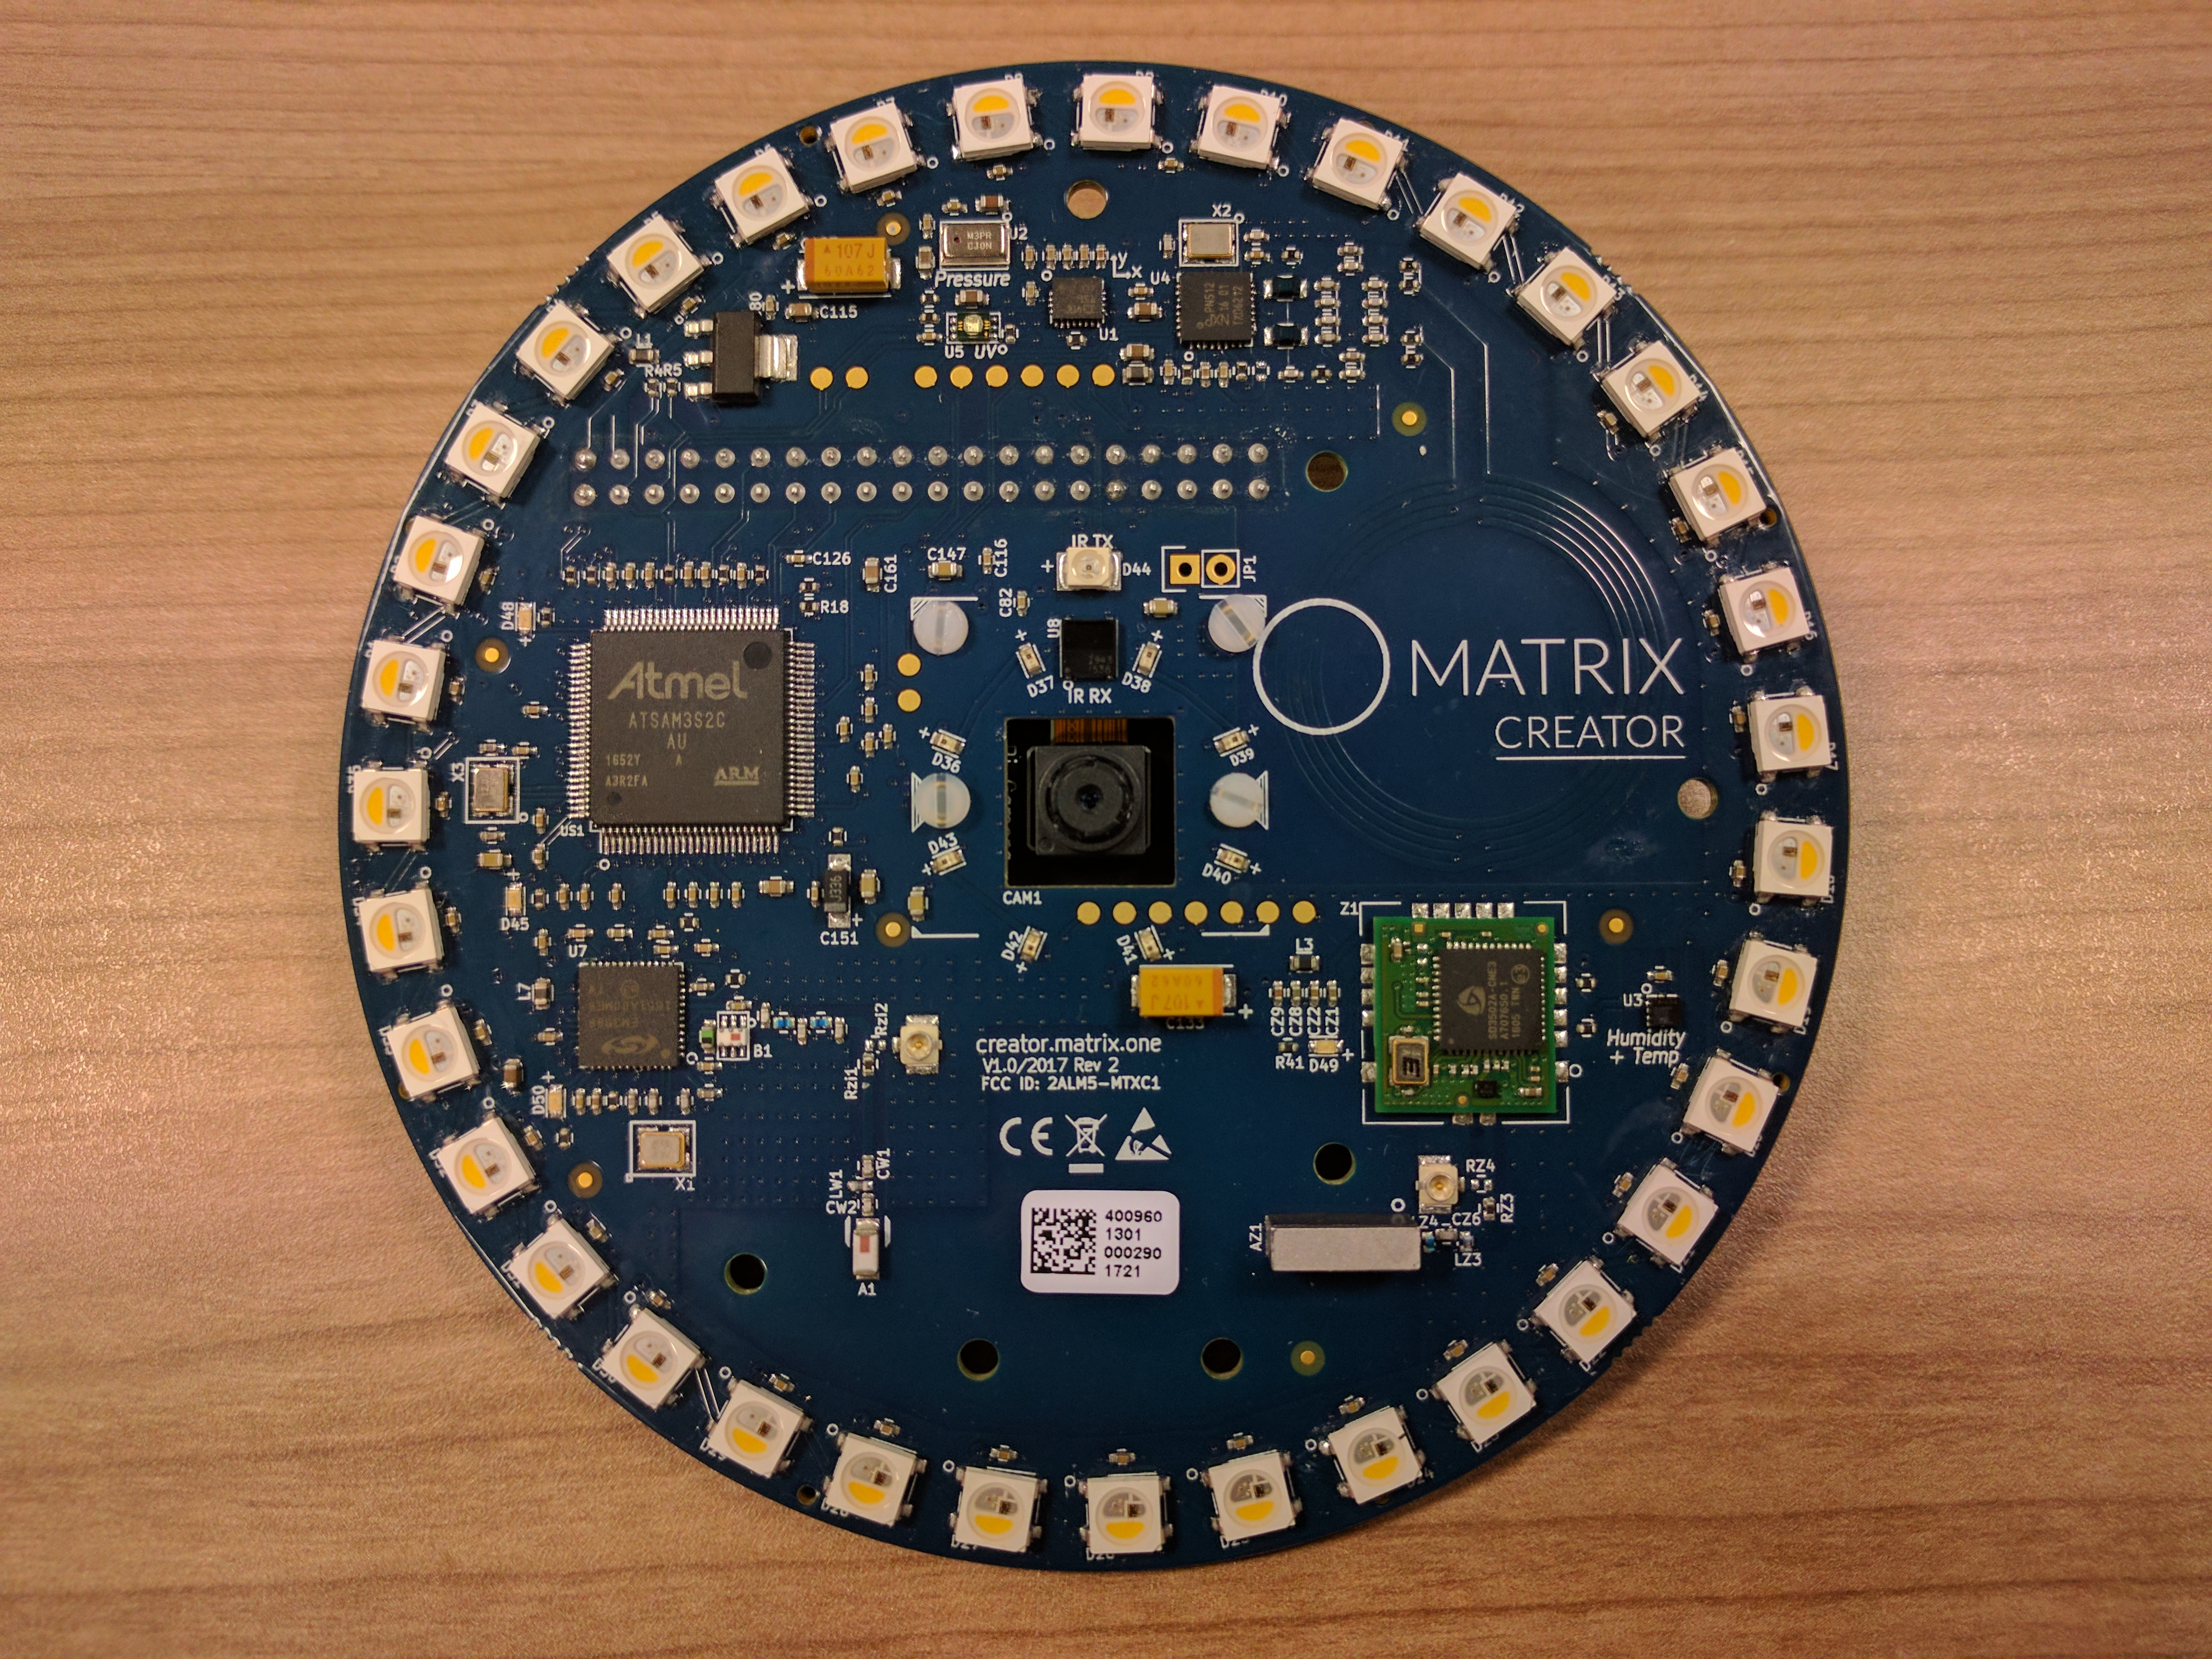 Matrix Creator Maker Space Wiringpi Install Banana Pi Raspberry And Is Loaded With Masses Of Sensors Other Gizmos This Makes It A Great Choice For Variety Different Iot Applications Such As